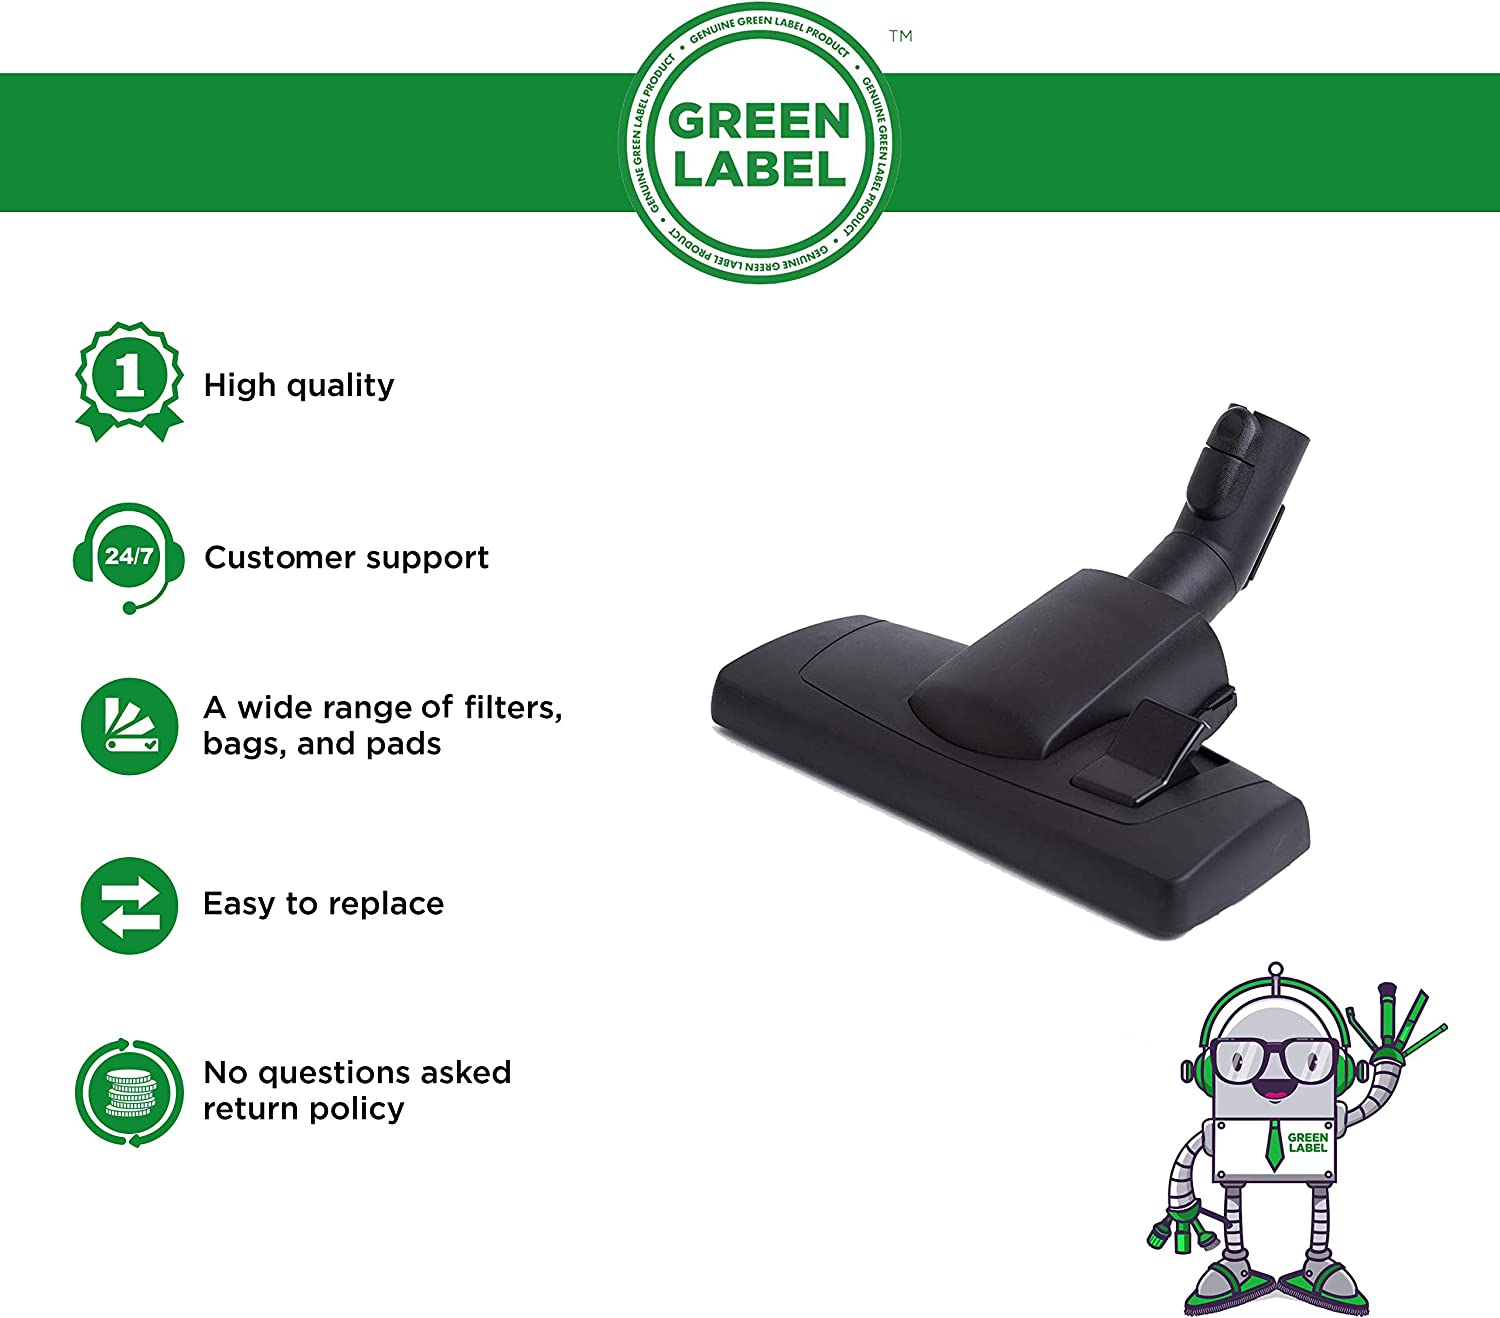 For Miele S1/S2/S4/S5/S6/S8Vacuum CleanerReplacement35 mmFloor Tool Brush (compares to AllTeQ SBD 285-3, 7253830). Genuine Green Label Product